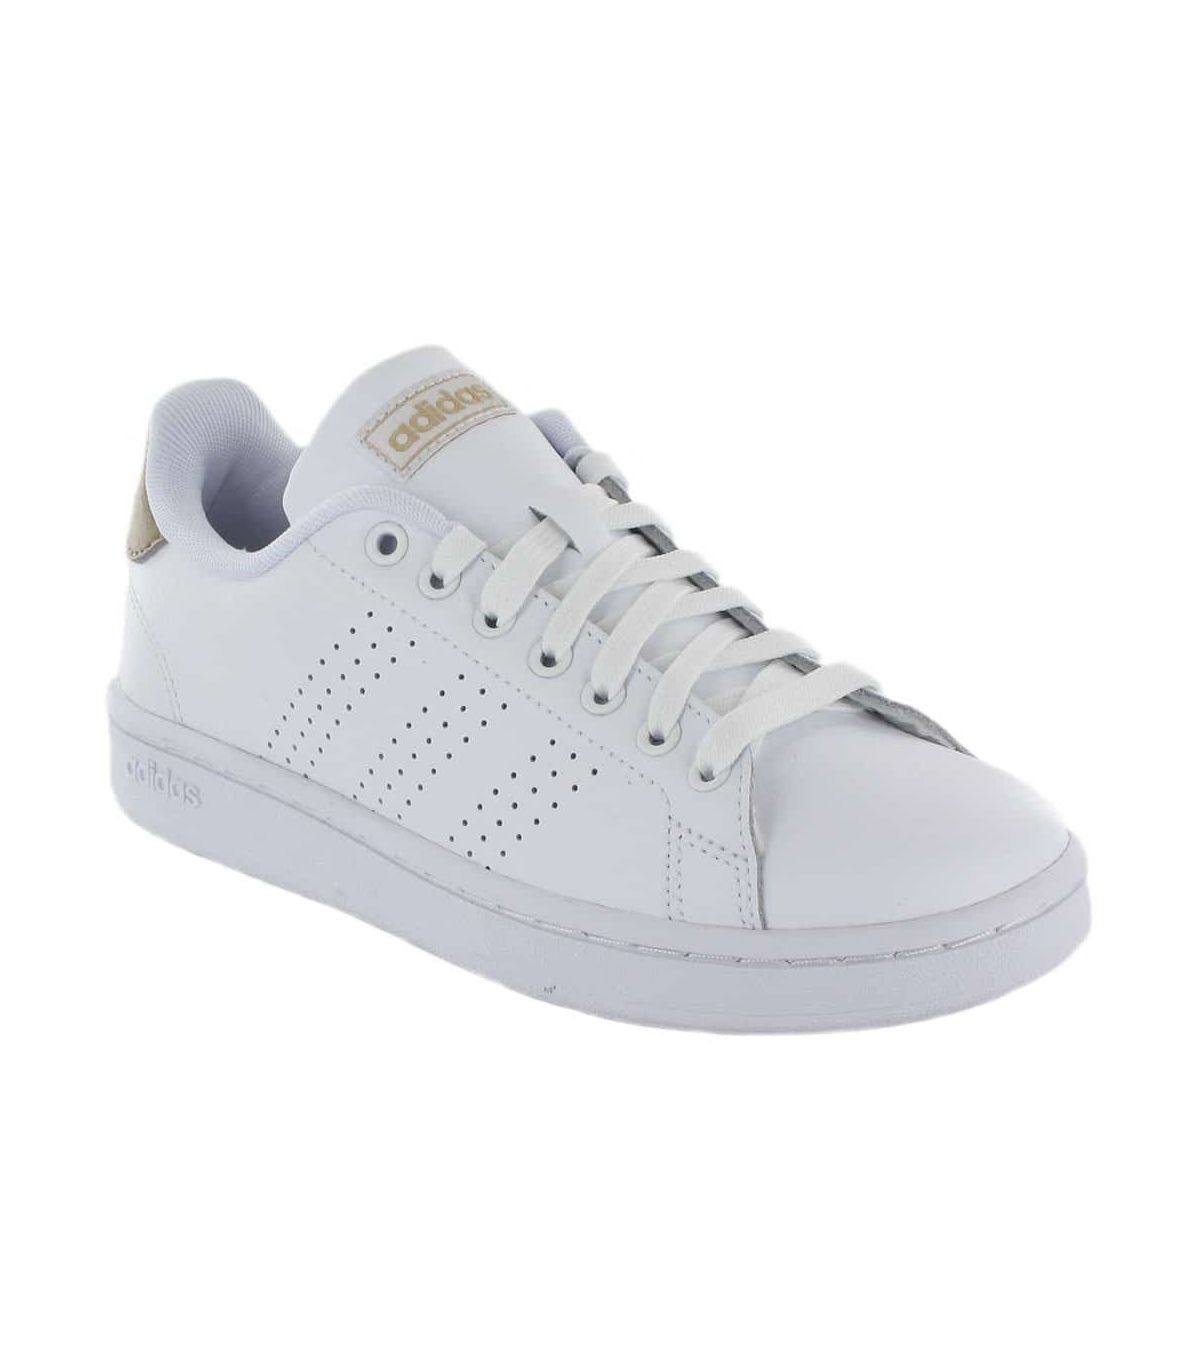 Adidas Advantage W Adidas Shoes Women's Casual Lifestyle Sizes: 36 2/3, 37 1/3, 38, 38 2/3, 39 1/3, 40, 40 2/3, 41